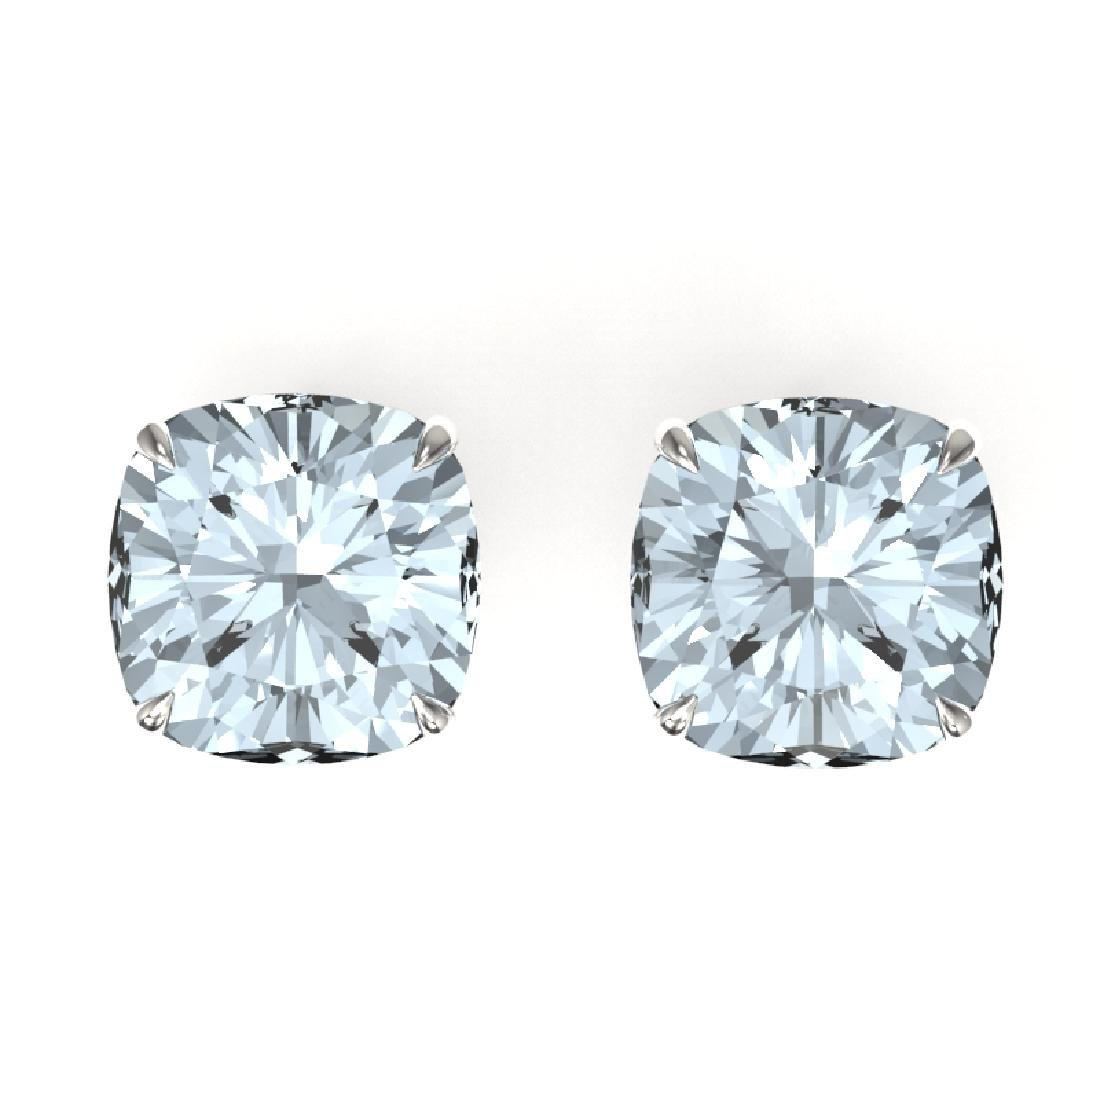 9 CTW Cushion Cut Aquamarine Inspired Solitaire Stud